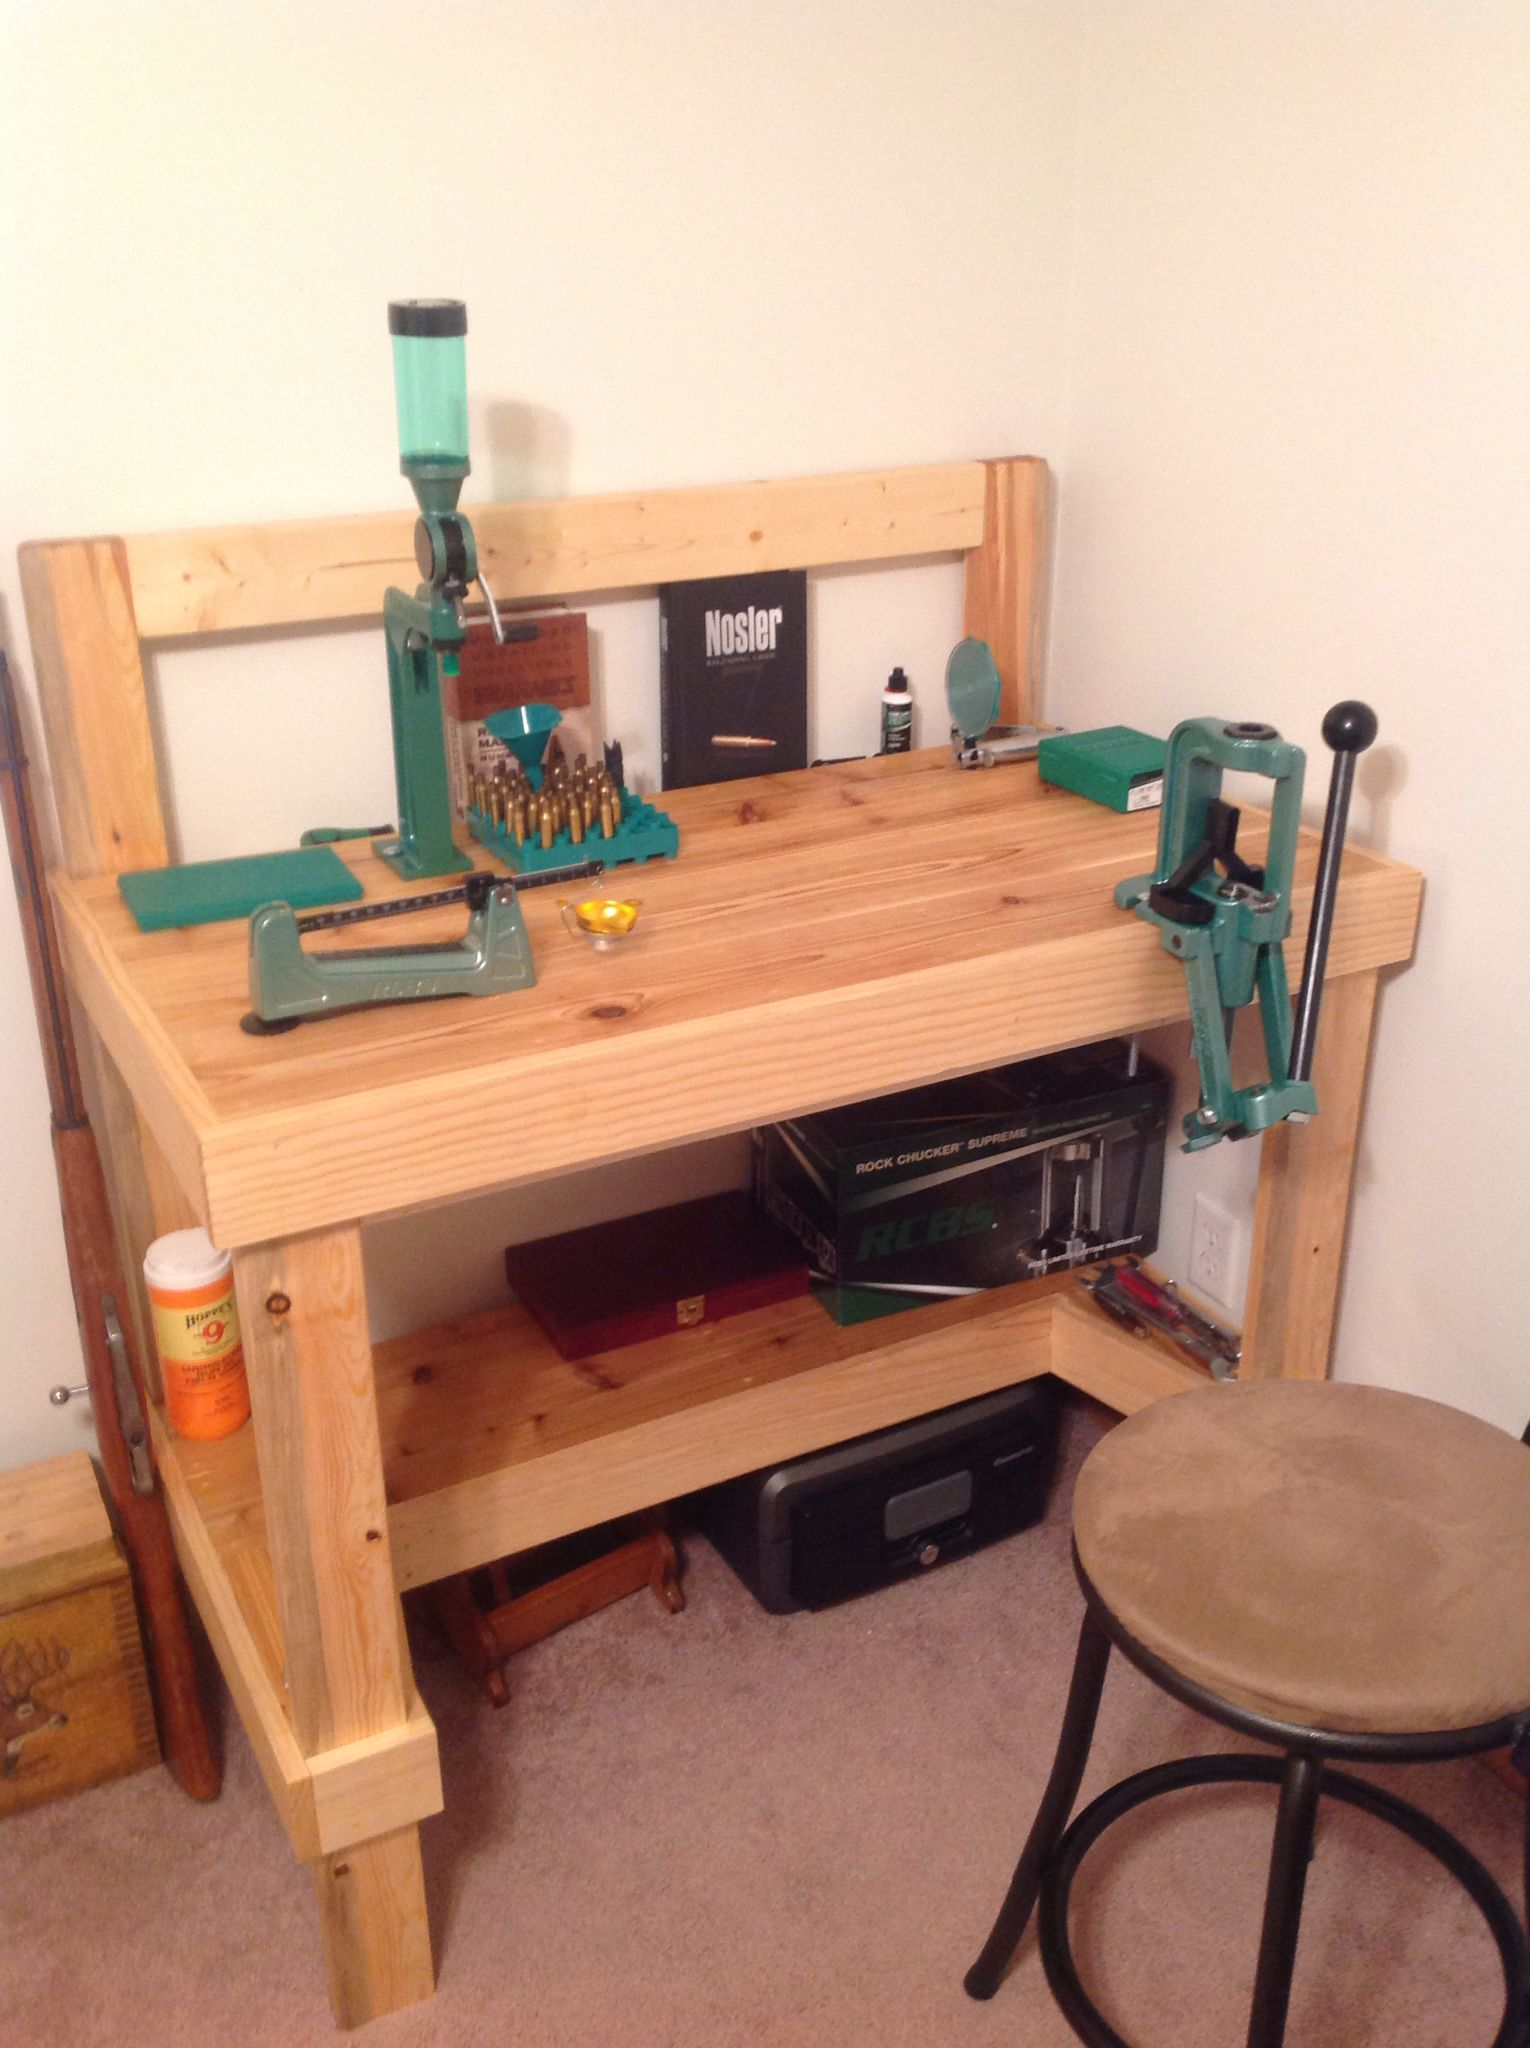 sale diy bench symbianology setup reloading for designs small info portable